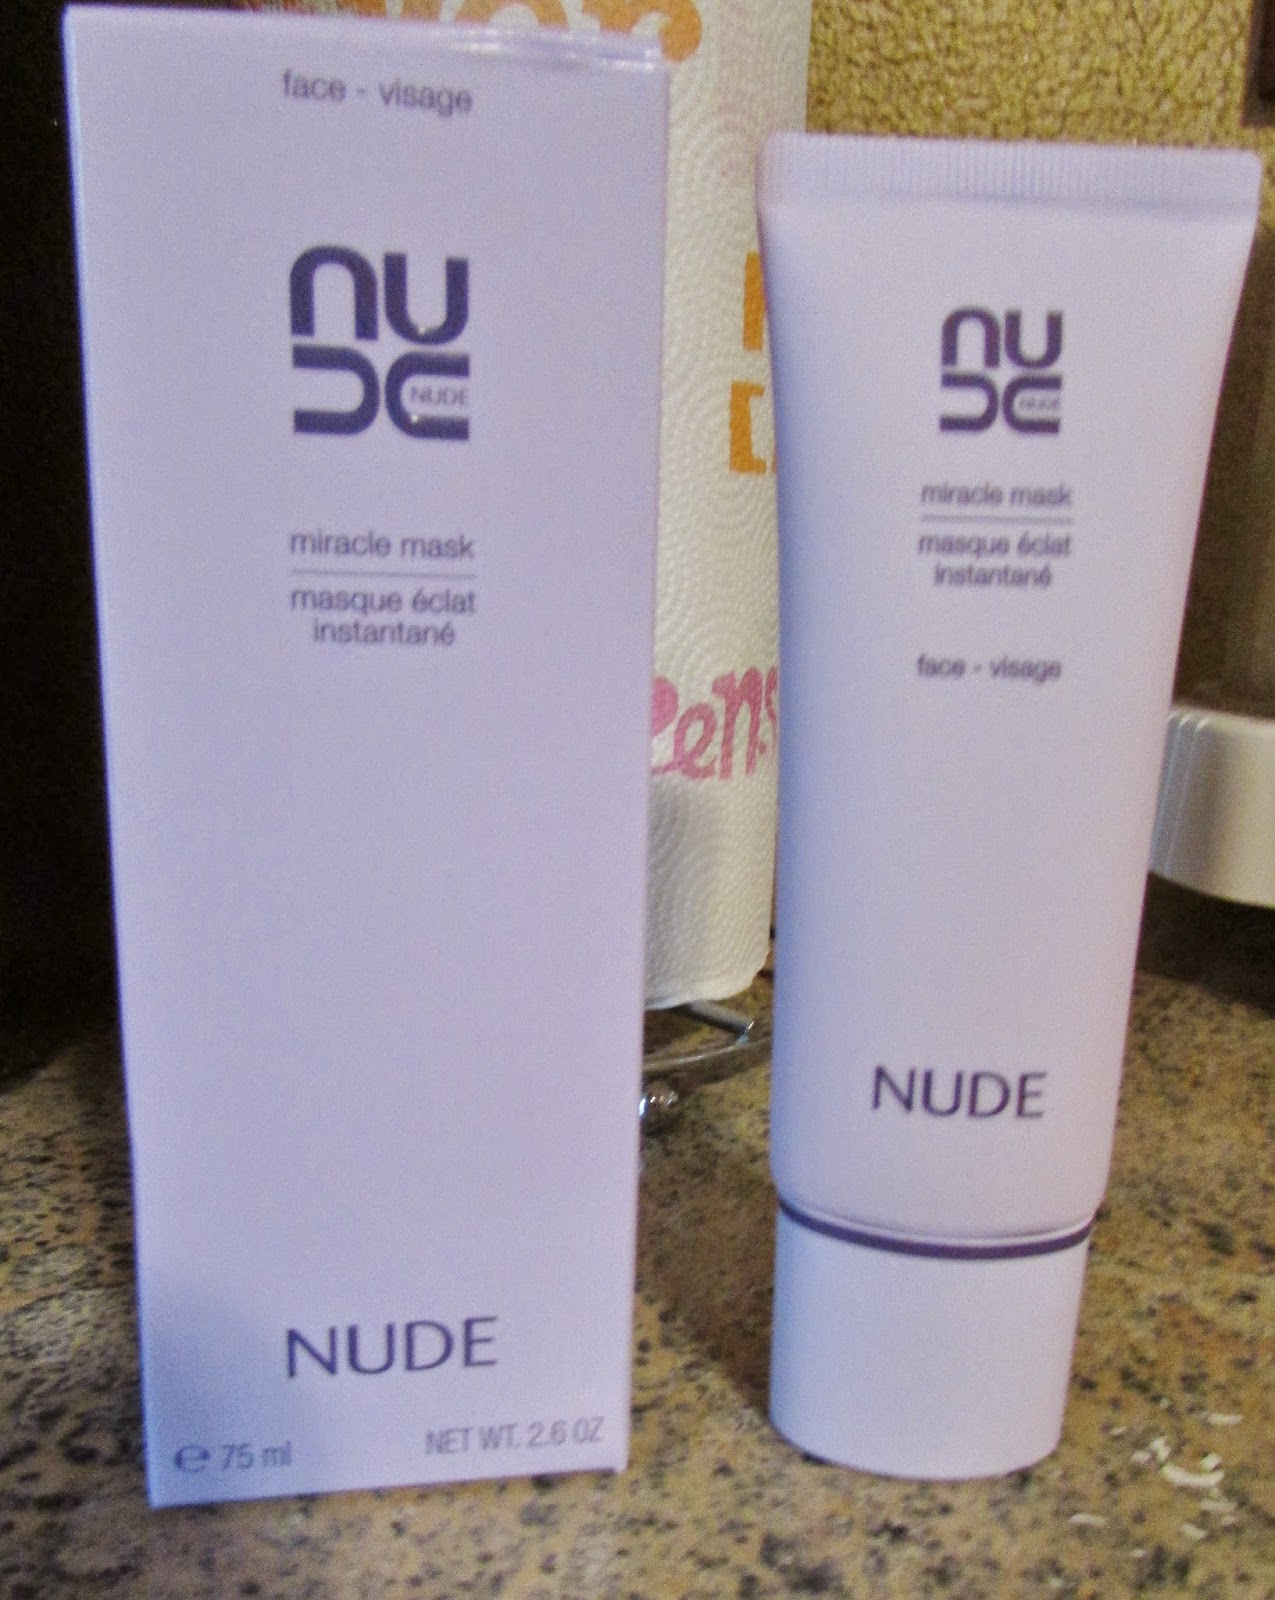 Nude miracle face mask would